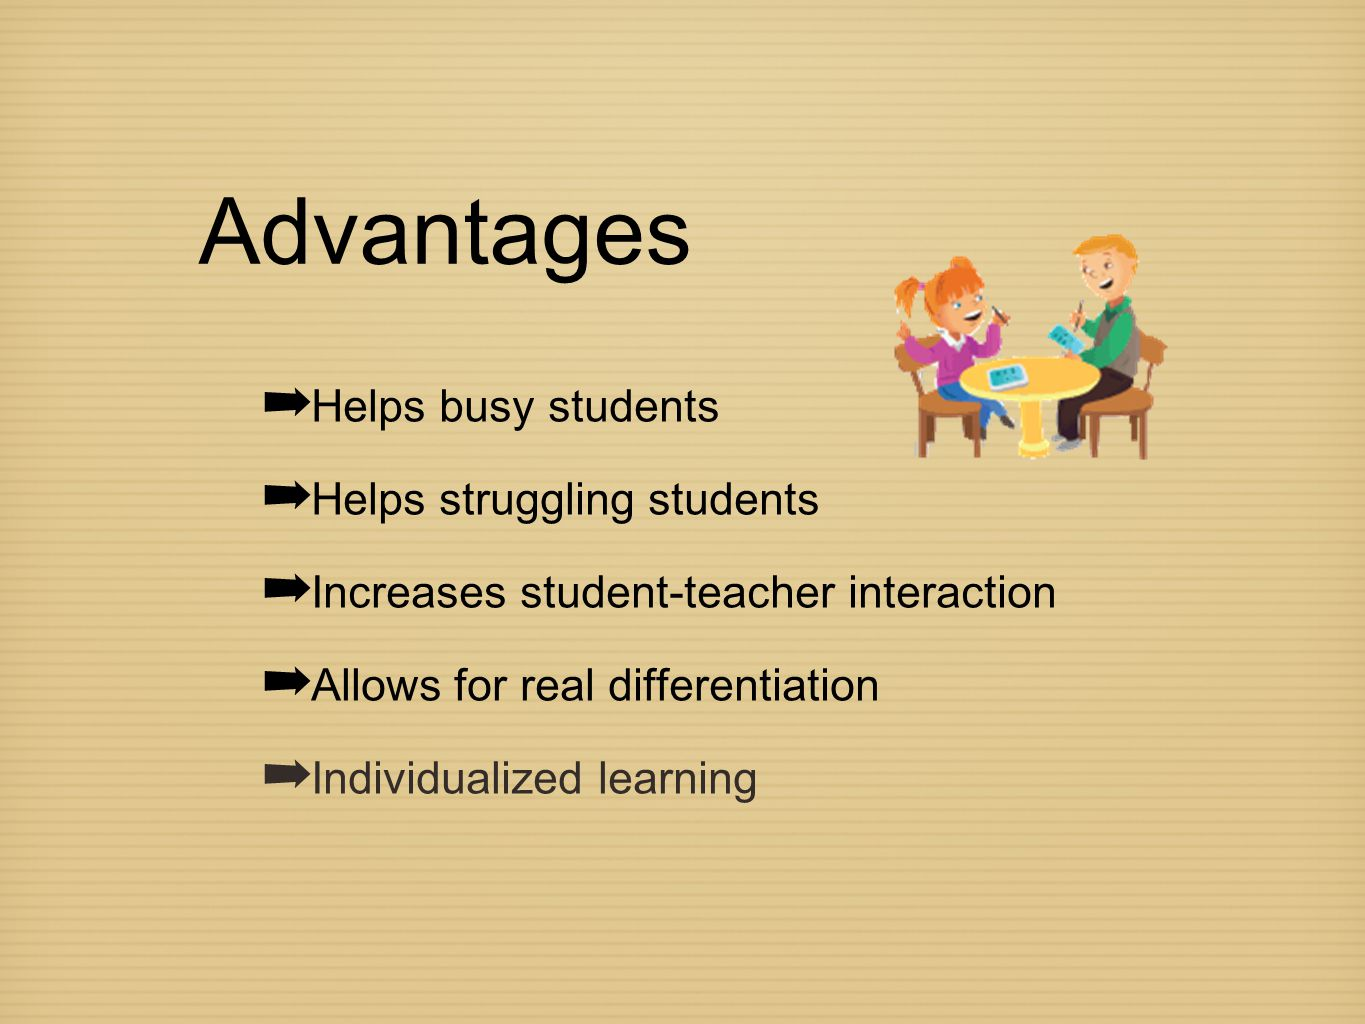 Advantages ➡ Helps busy students ➡ Helps struggling students ➡ Increases student-teacher interaction ➡ Allows for real differentiation ➡ Individualized learning